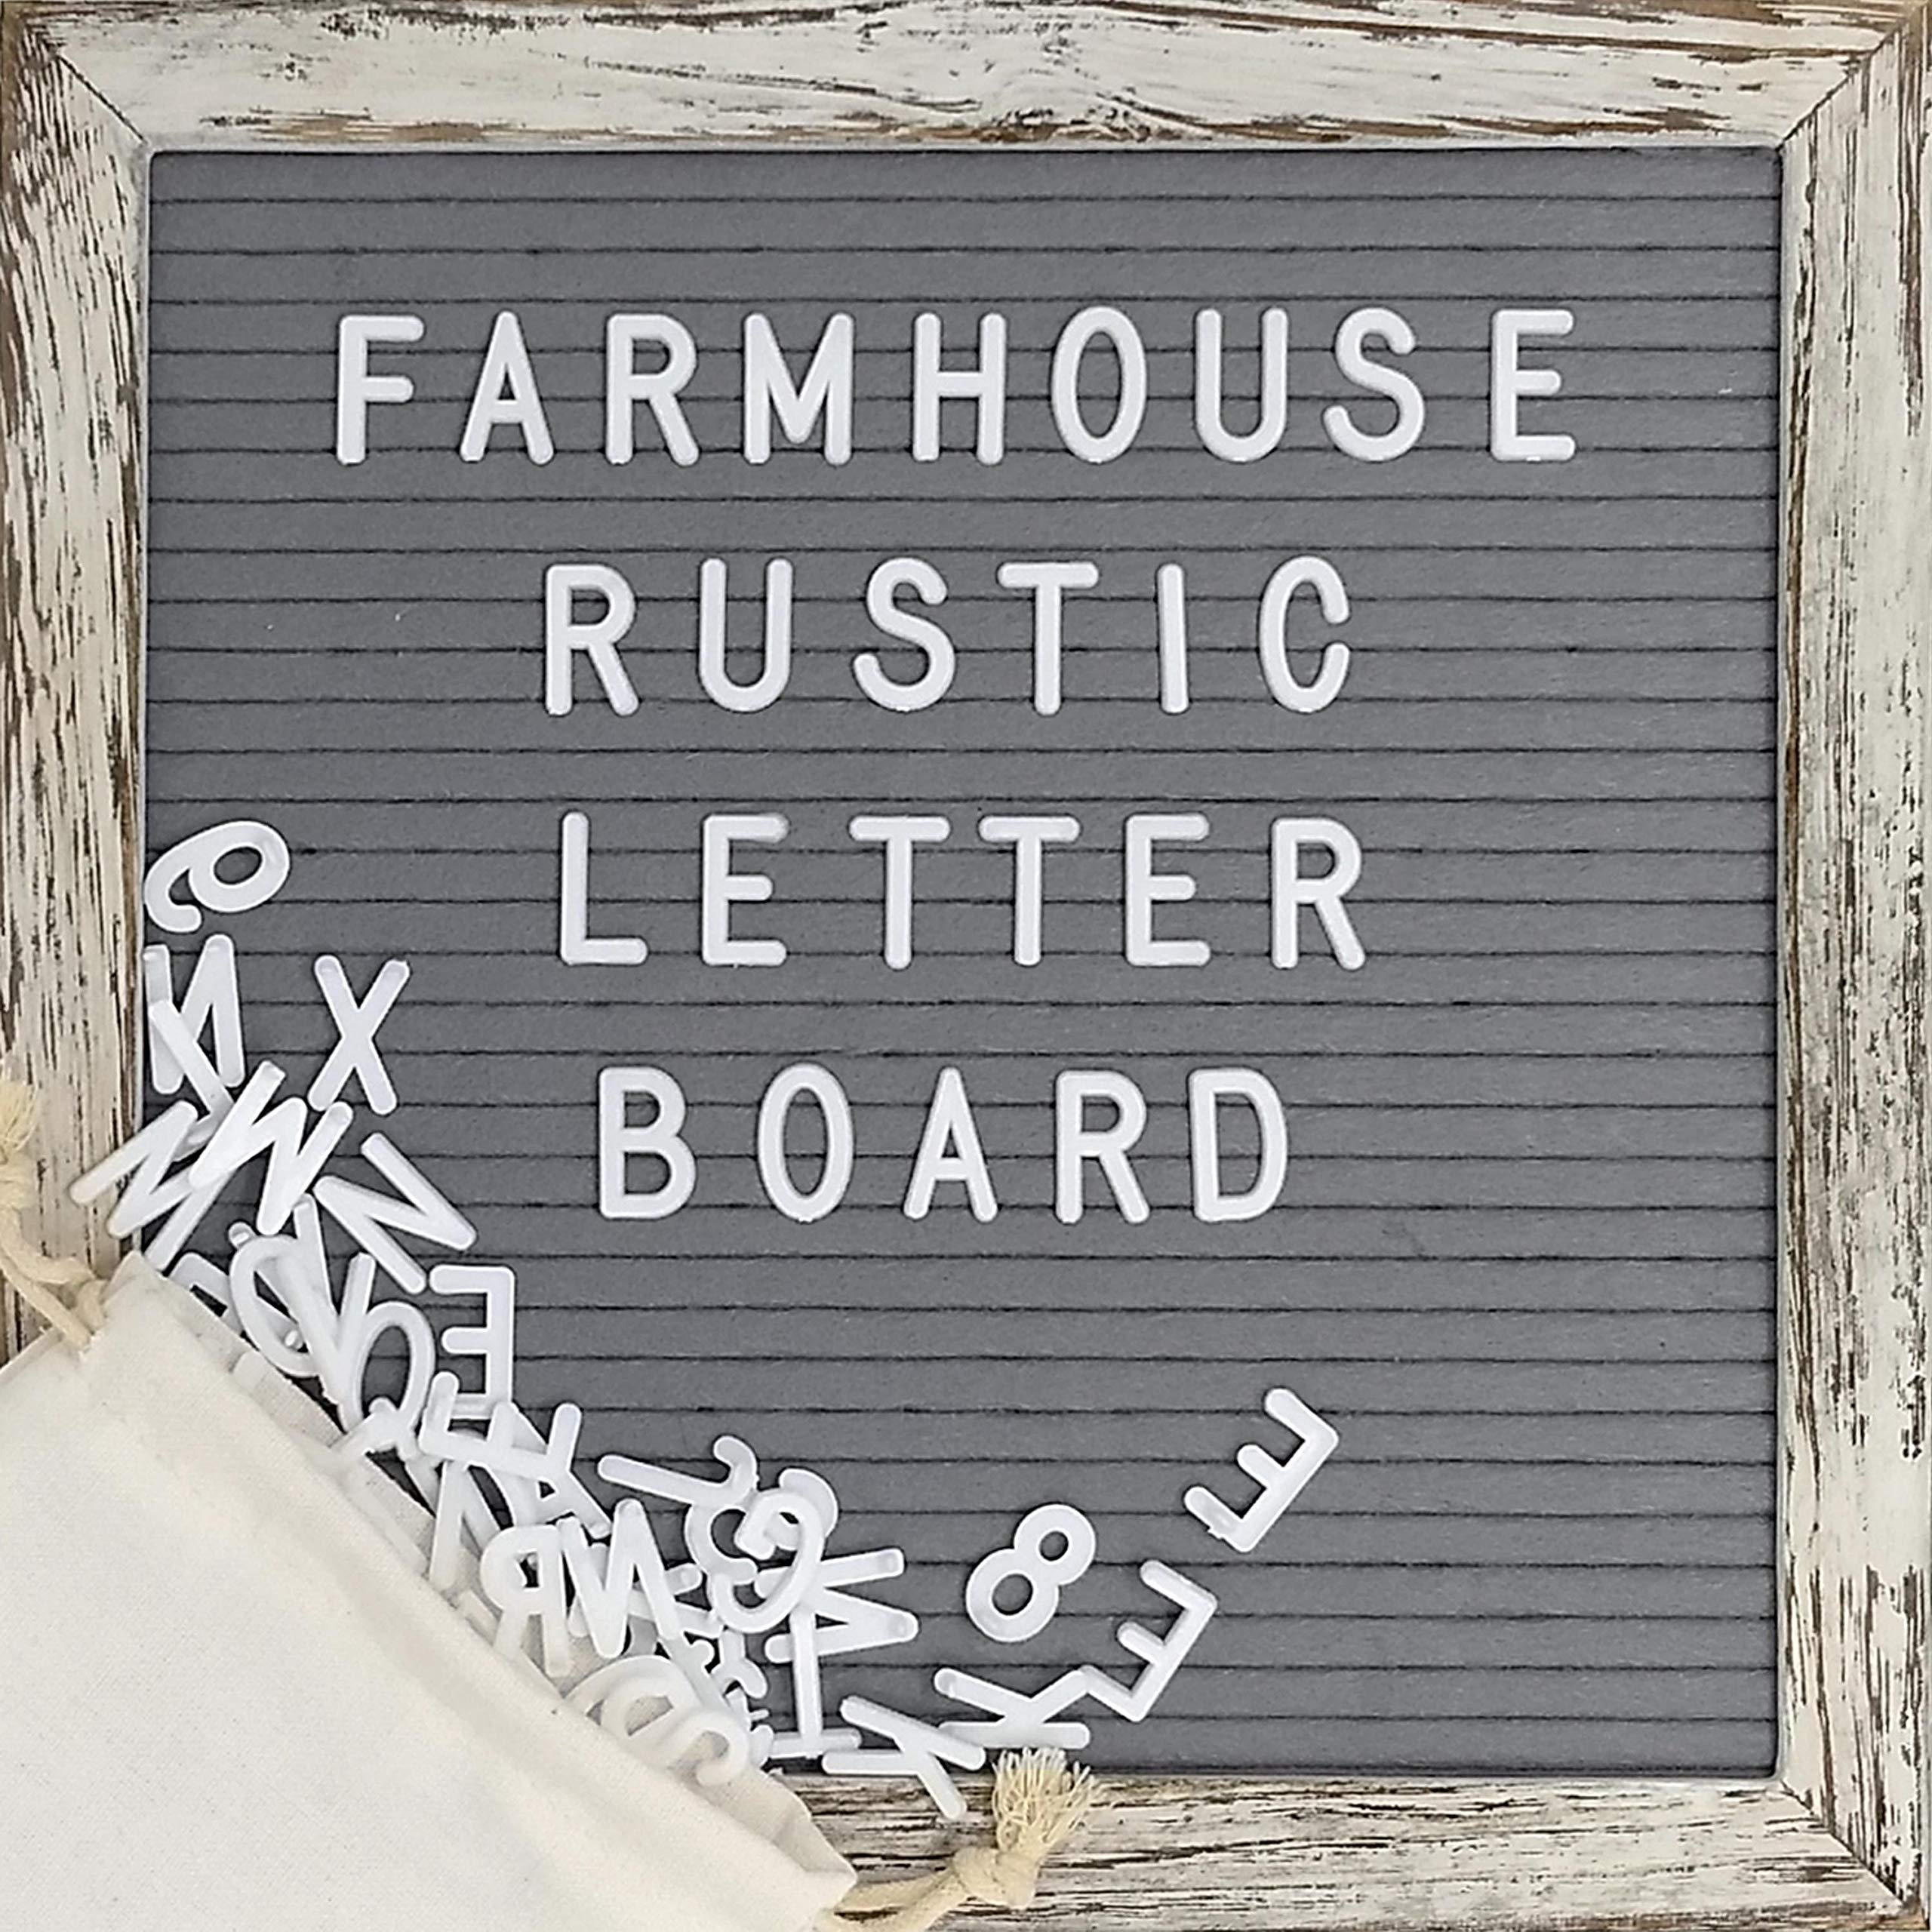 Felt Letter Board with 10x10 Inch Rustic Wood Frame, Script Words, Precut Letters, Picture Hangers | Farmhouse Wall Decor | Shabby Chic Vintage Decor | Grey Felt Message Board by MAINEVENT